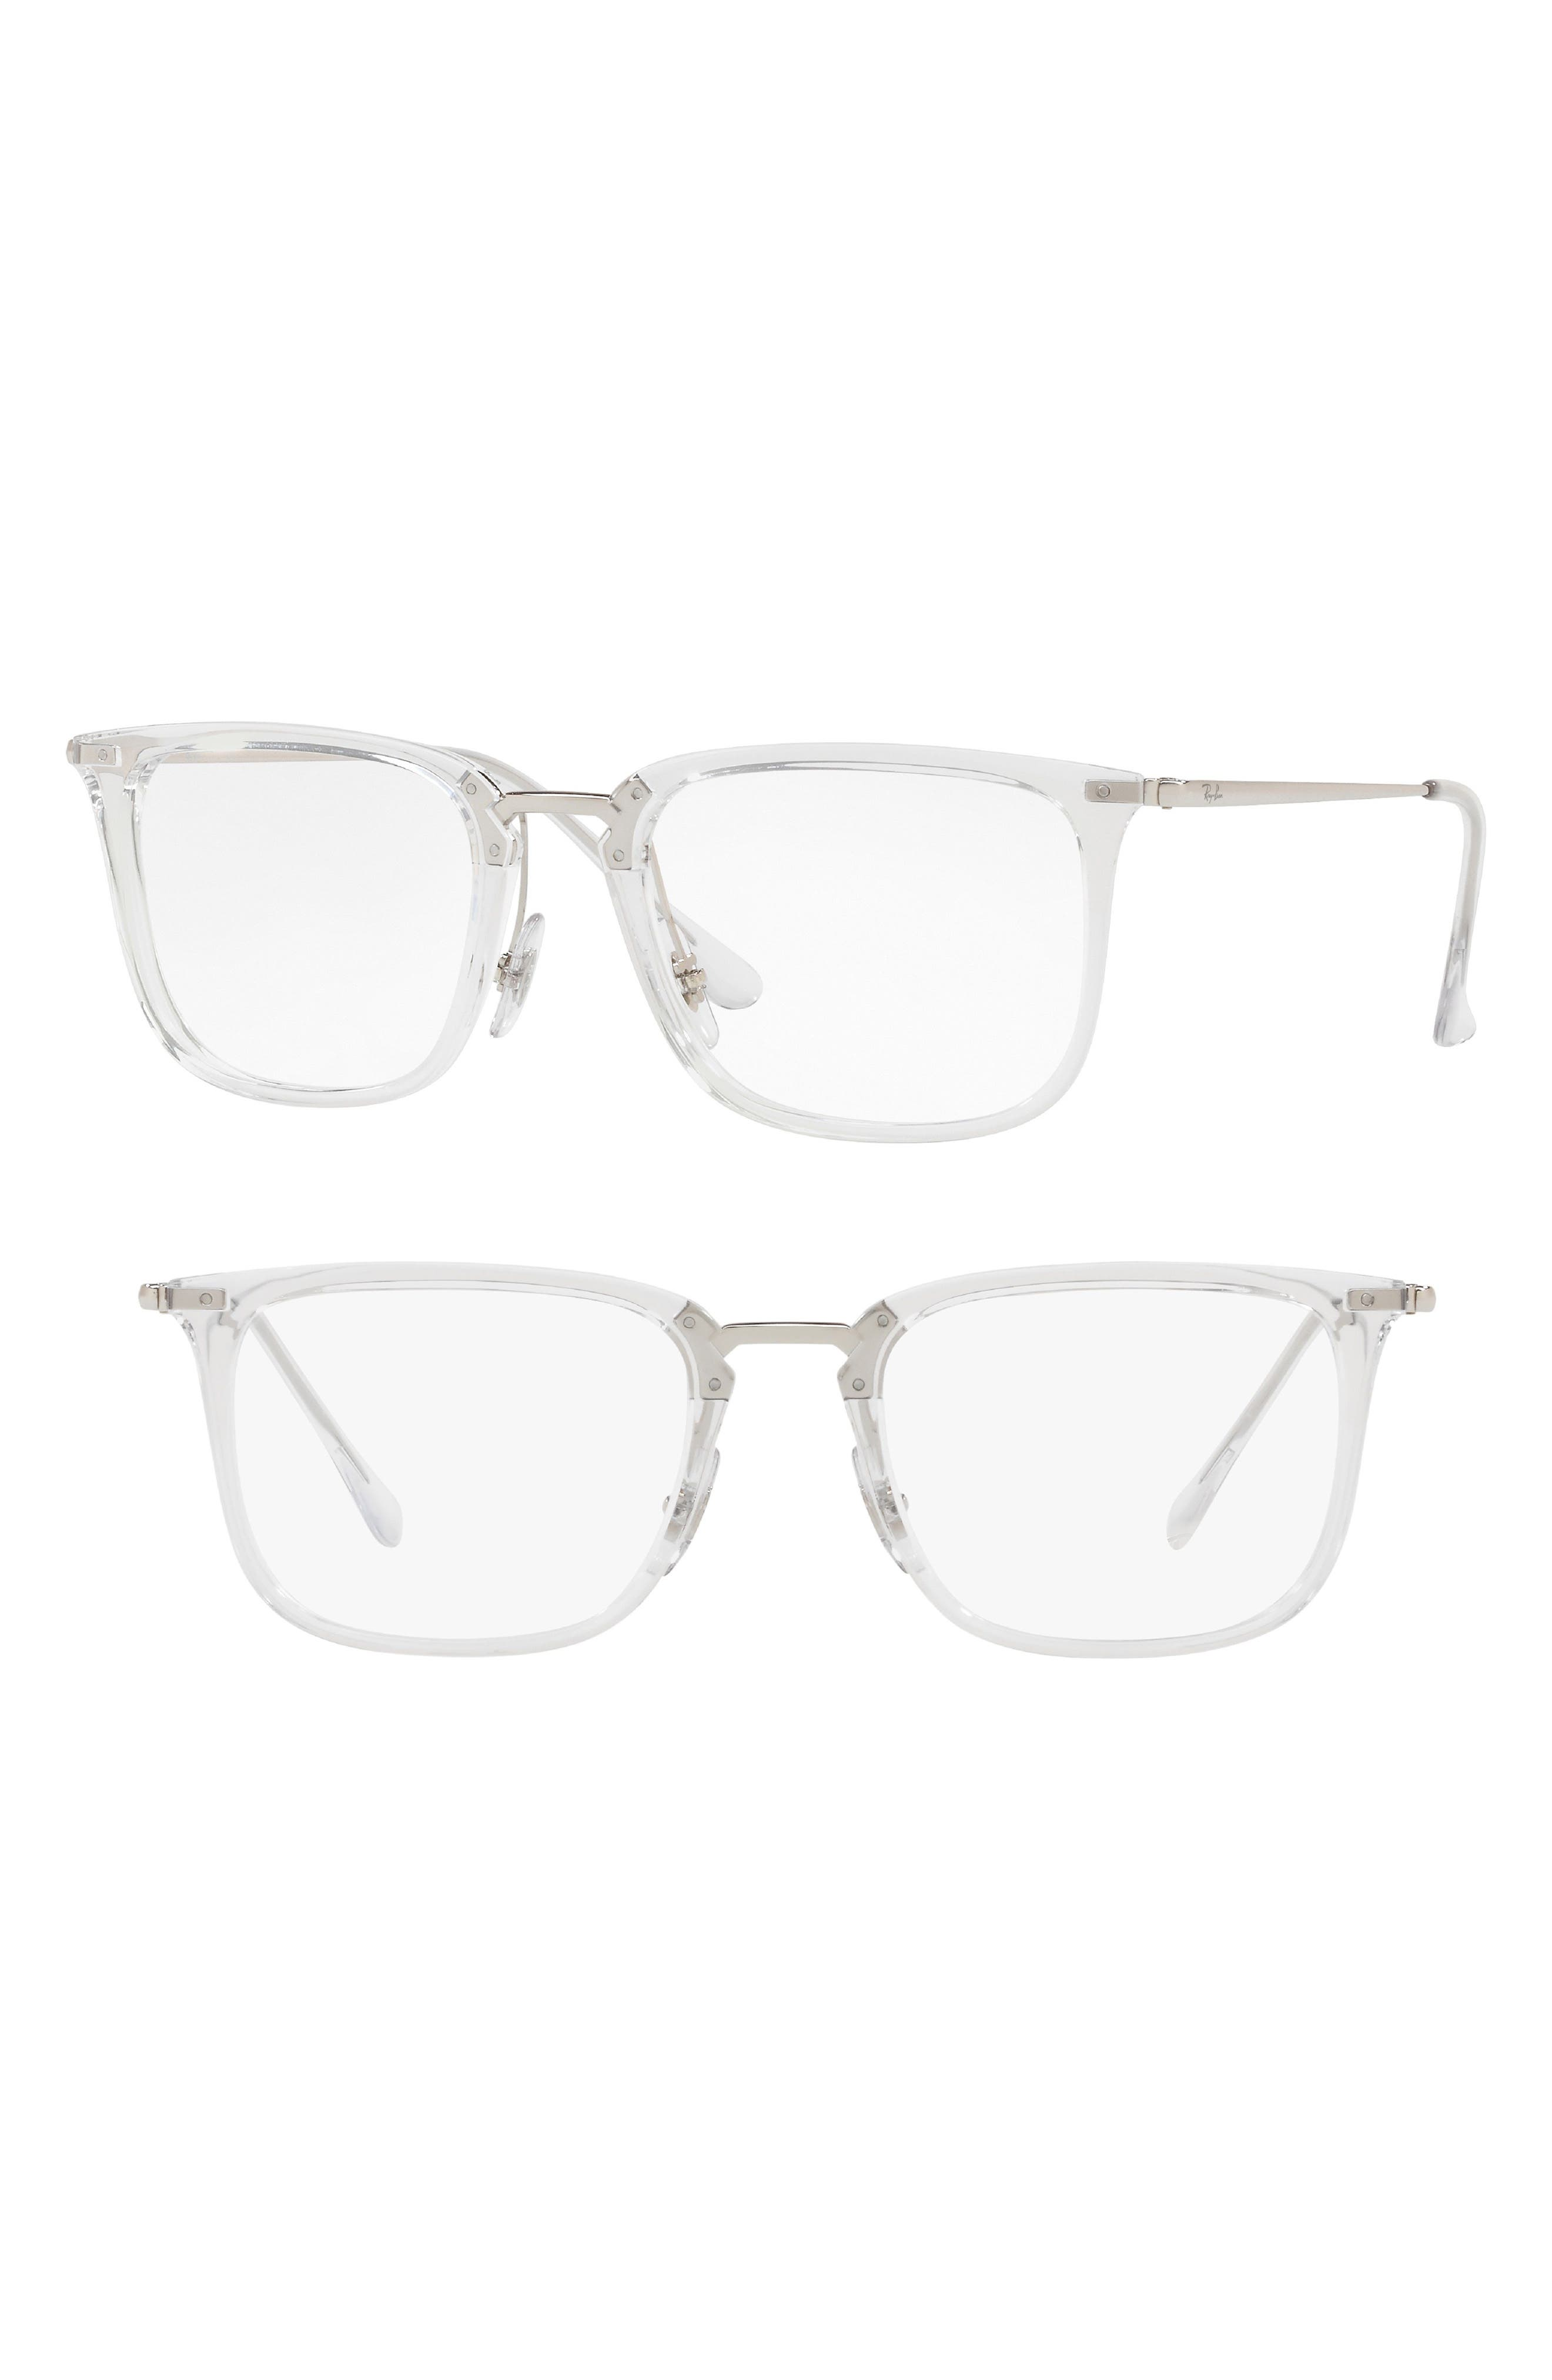 Ray-Ban 50mm Optical Glasses